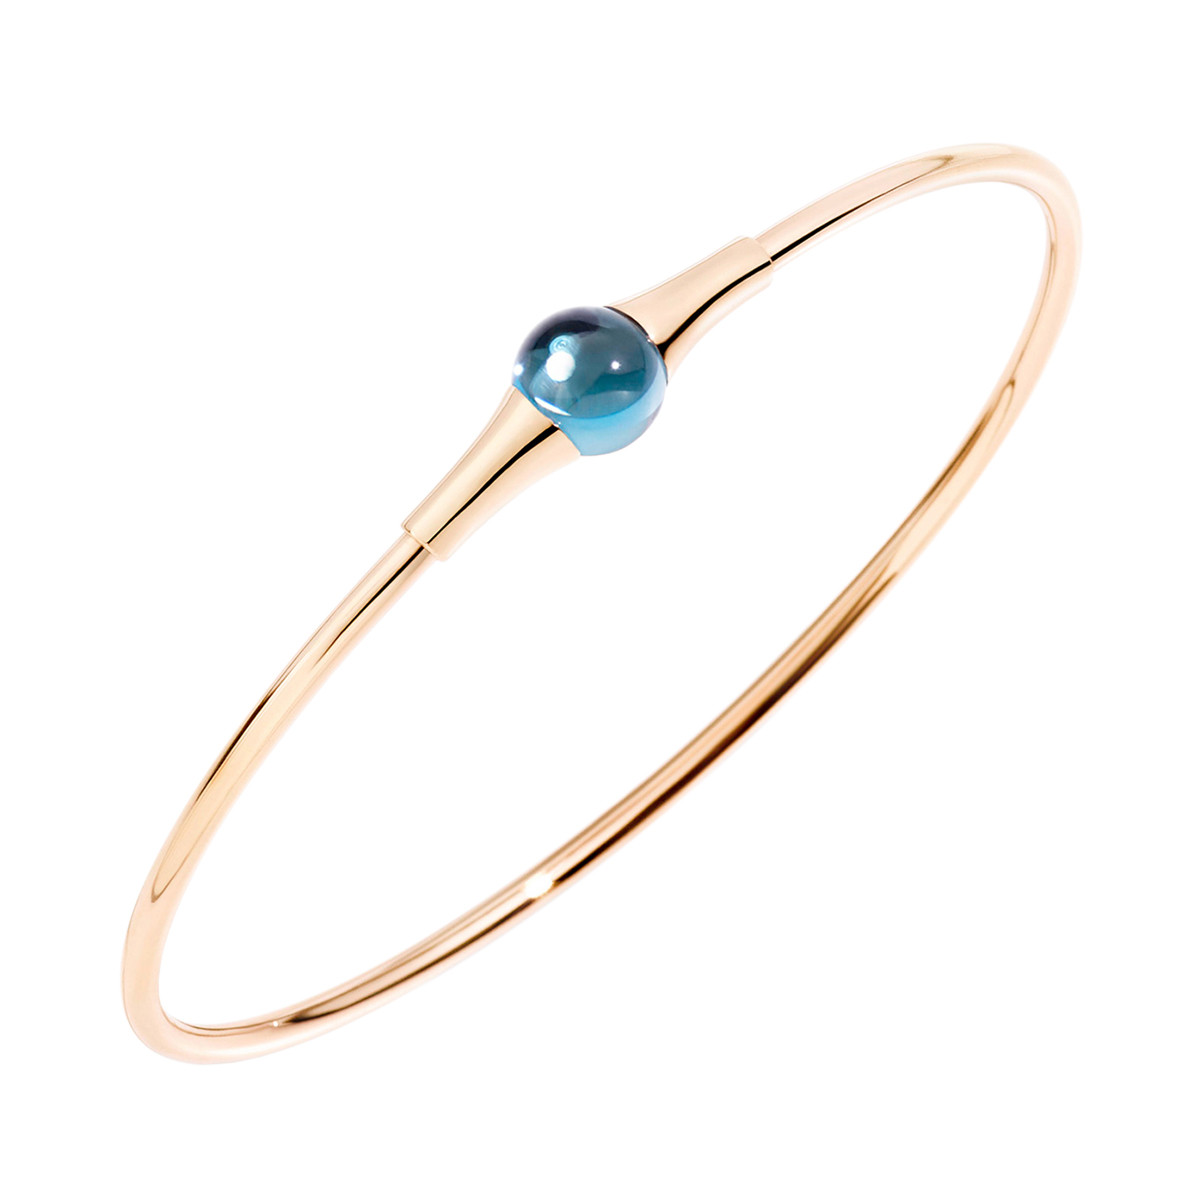 "London Blue Topaz ""M'ama Non M'ama"" Bangle"